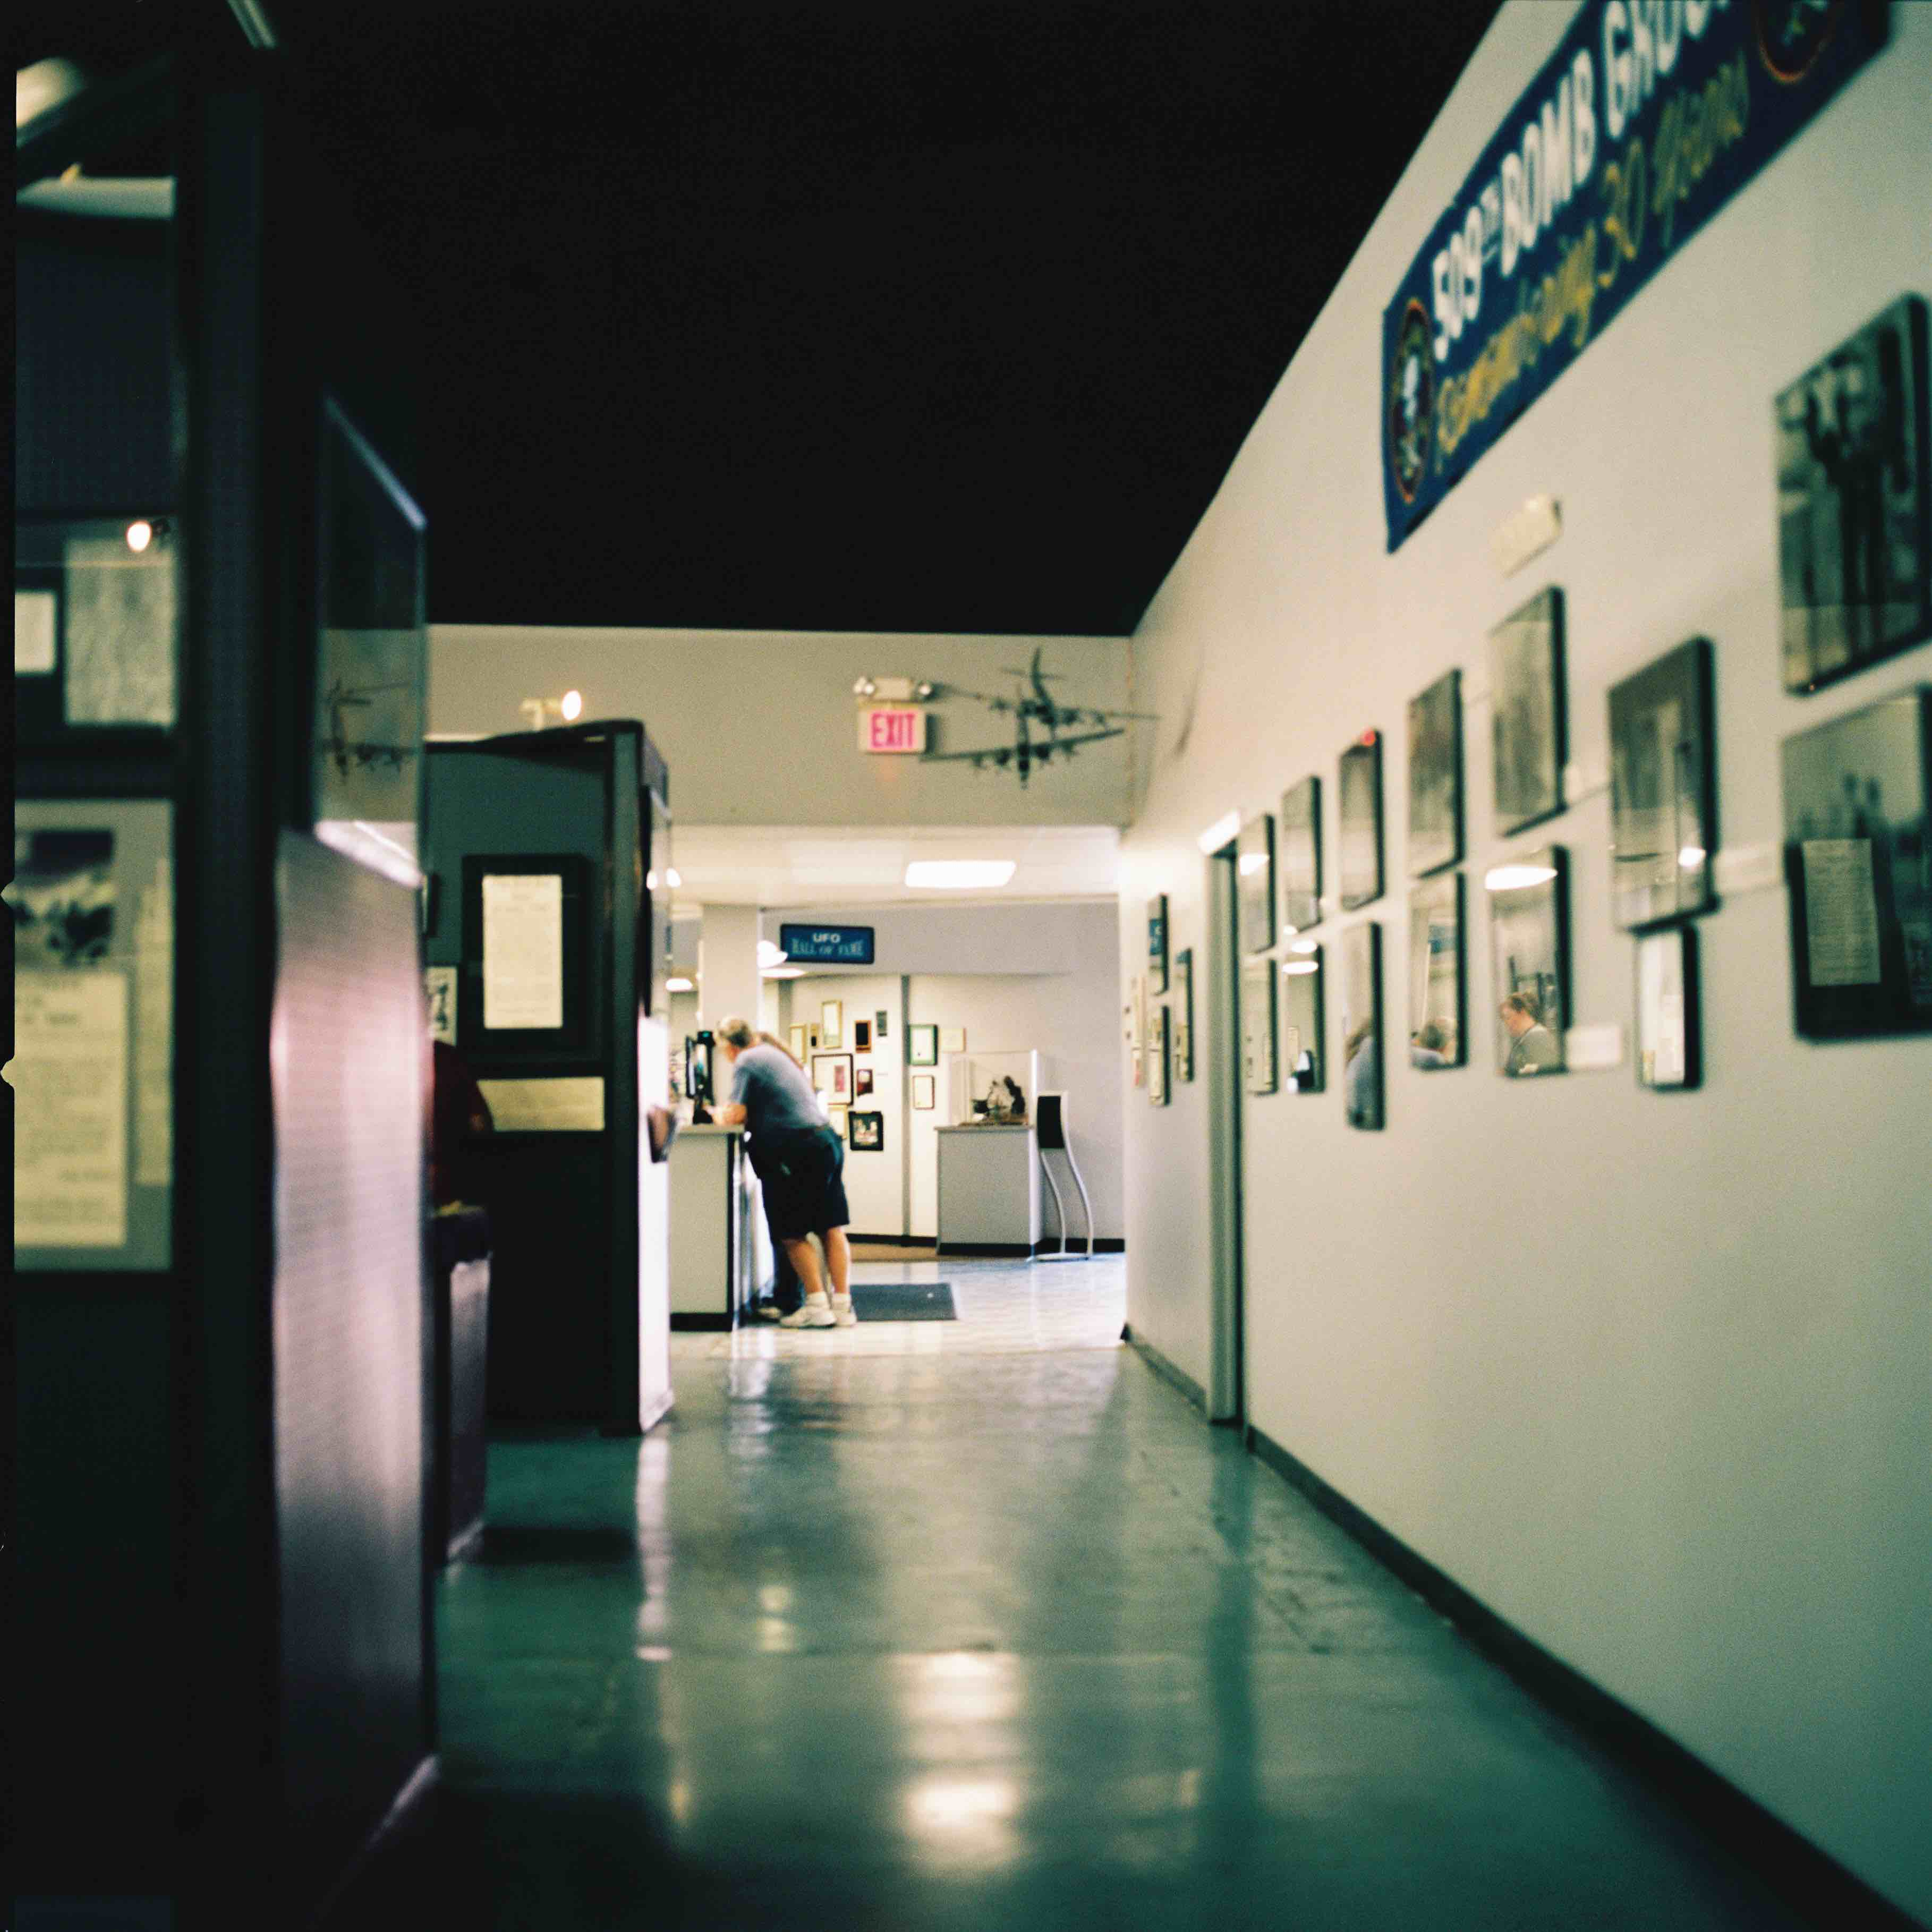 photo - Roswell, New Mexico museum lobby